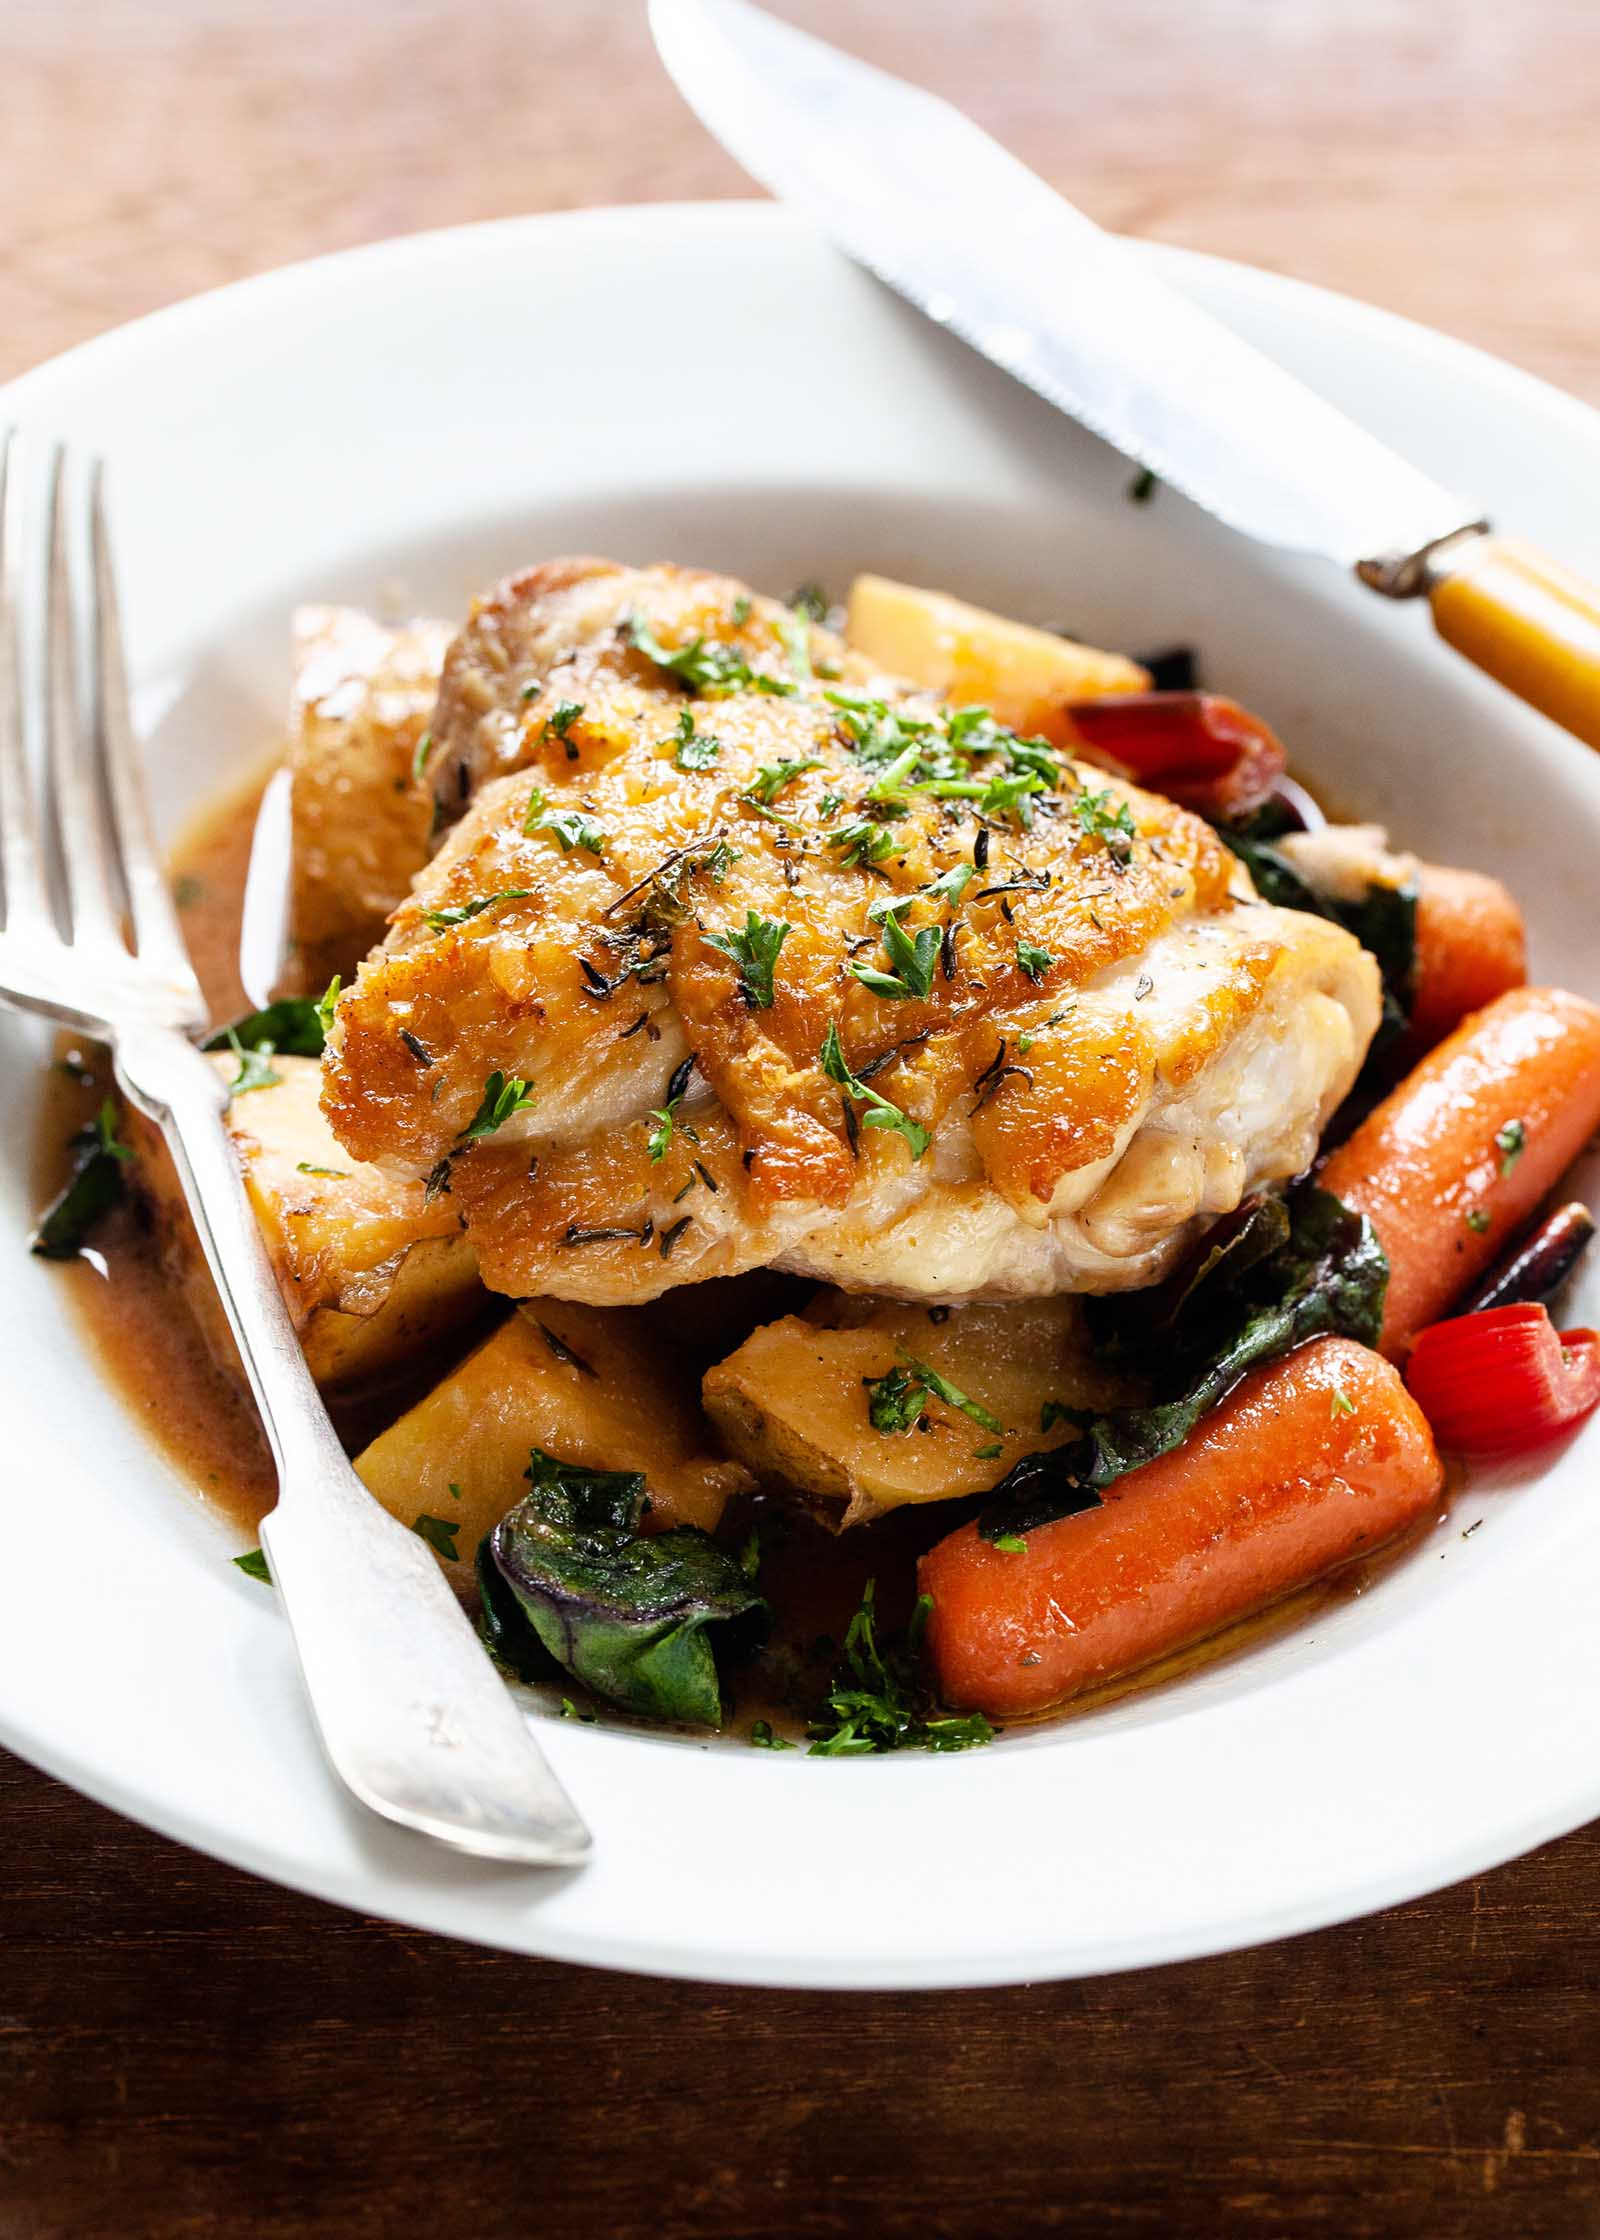 A shallow white bowl has one crispy chicken thigh covered in herbs. Baby carrots, wilted chard and chopped potatoes with a broth at the bottom are in the bowl. A knife is on the right side and a fork is on the right side of the bowl.